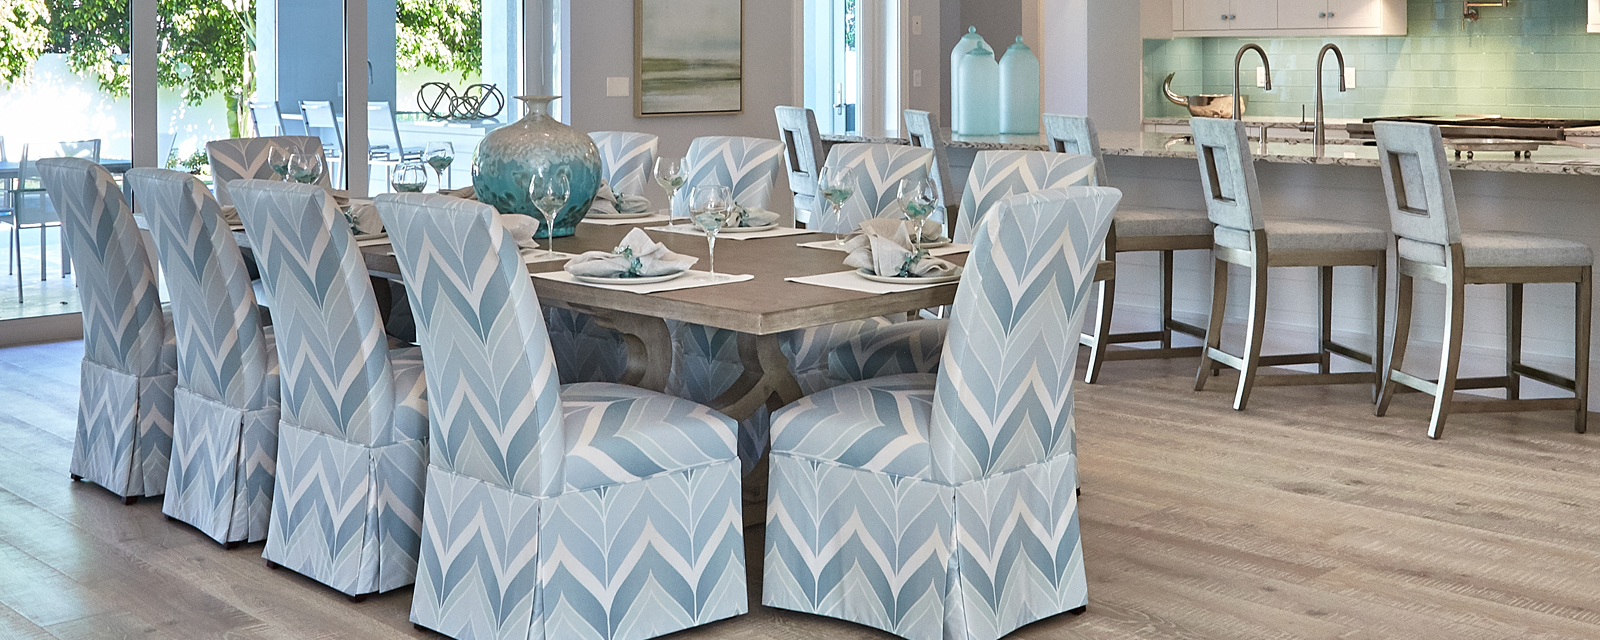 Turquoise Dining Room Frasesdeconquista Com